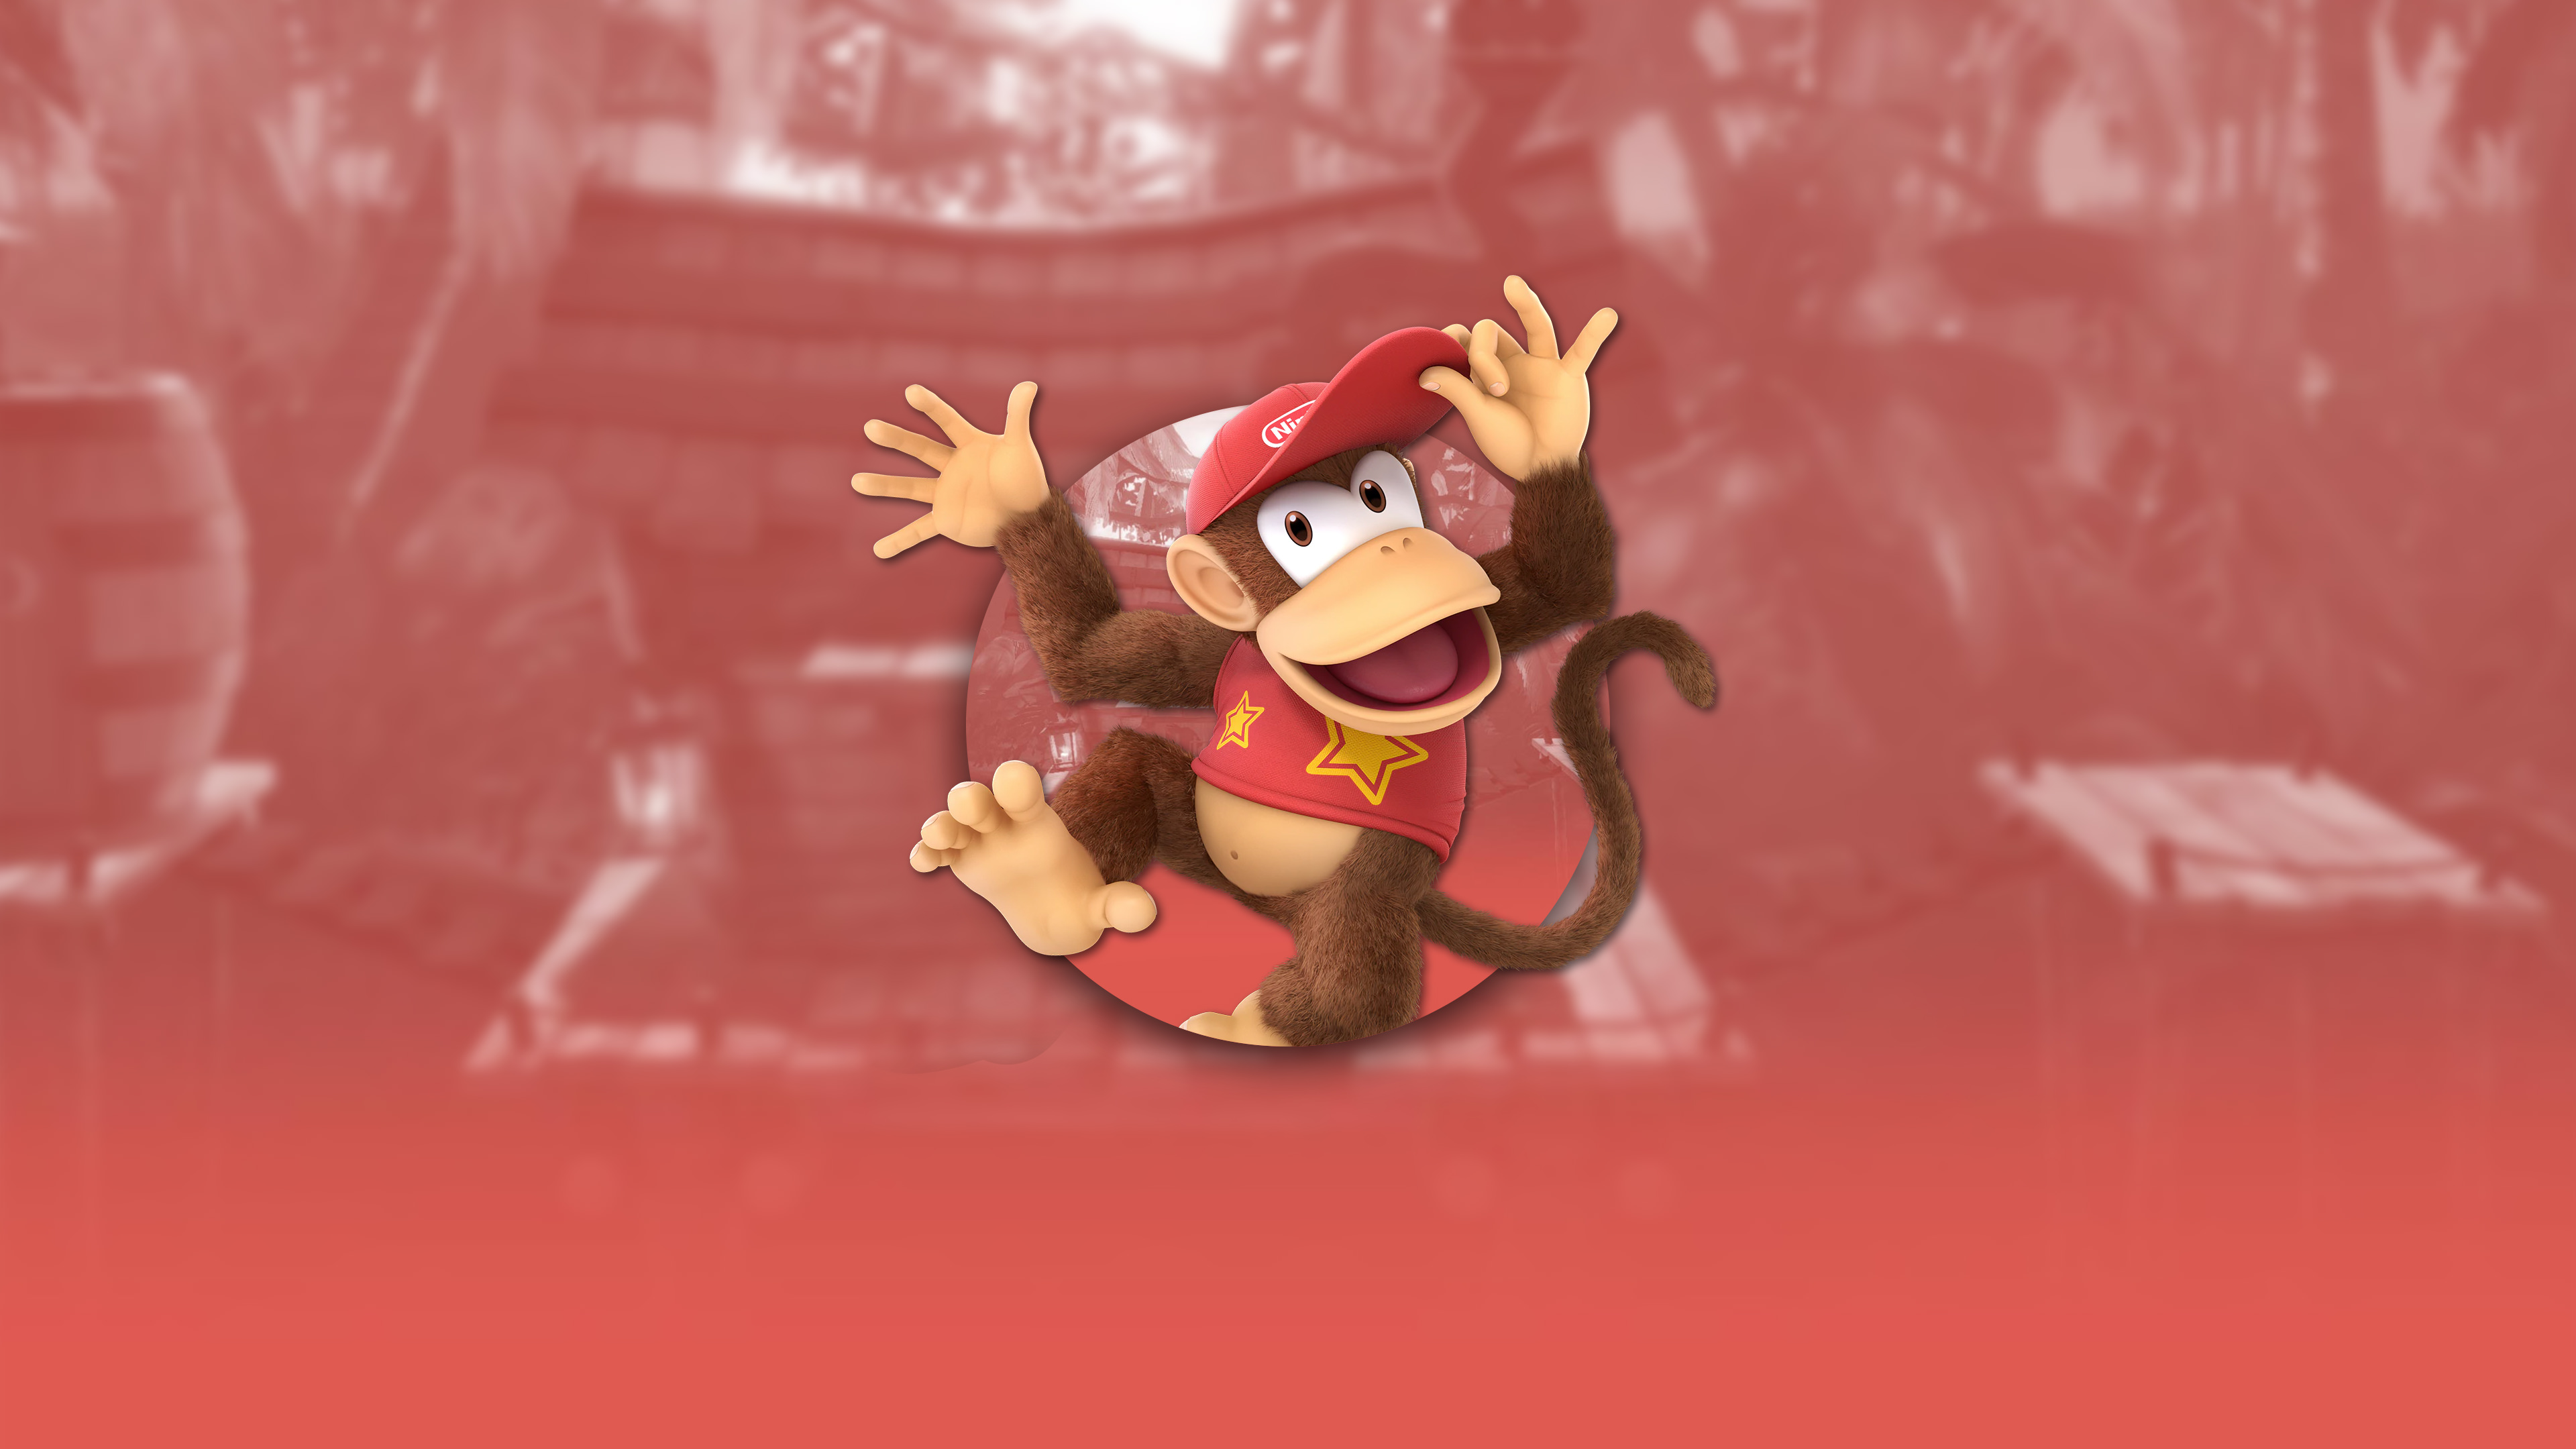 super smash bros ultimate diddy kong uhd 4k wallpaper